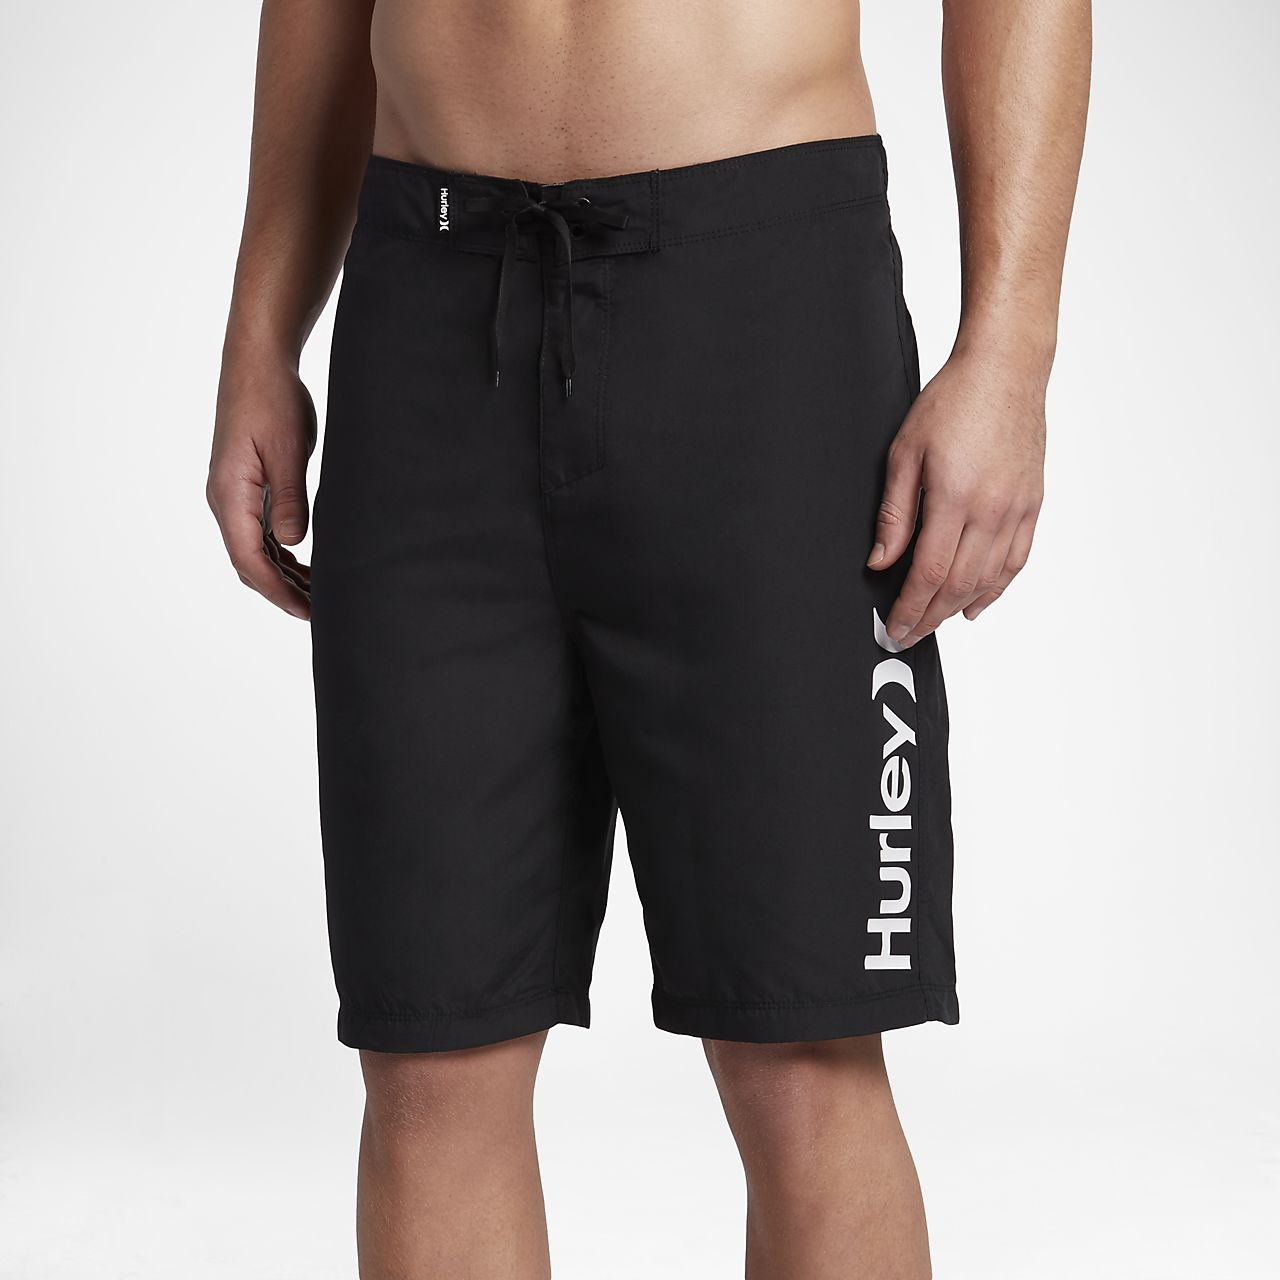 Hurley One And Only 2.0 Men's 21